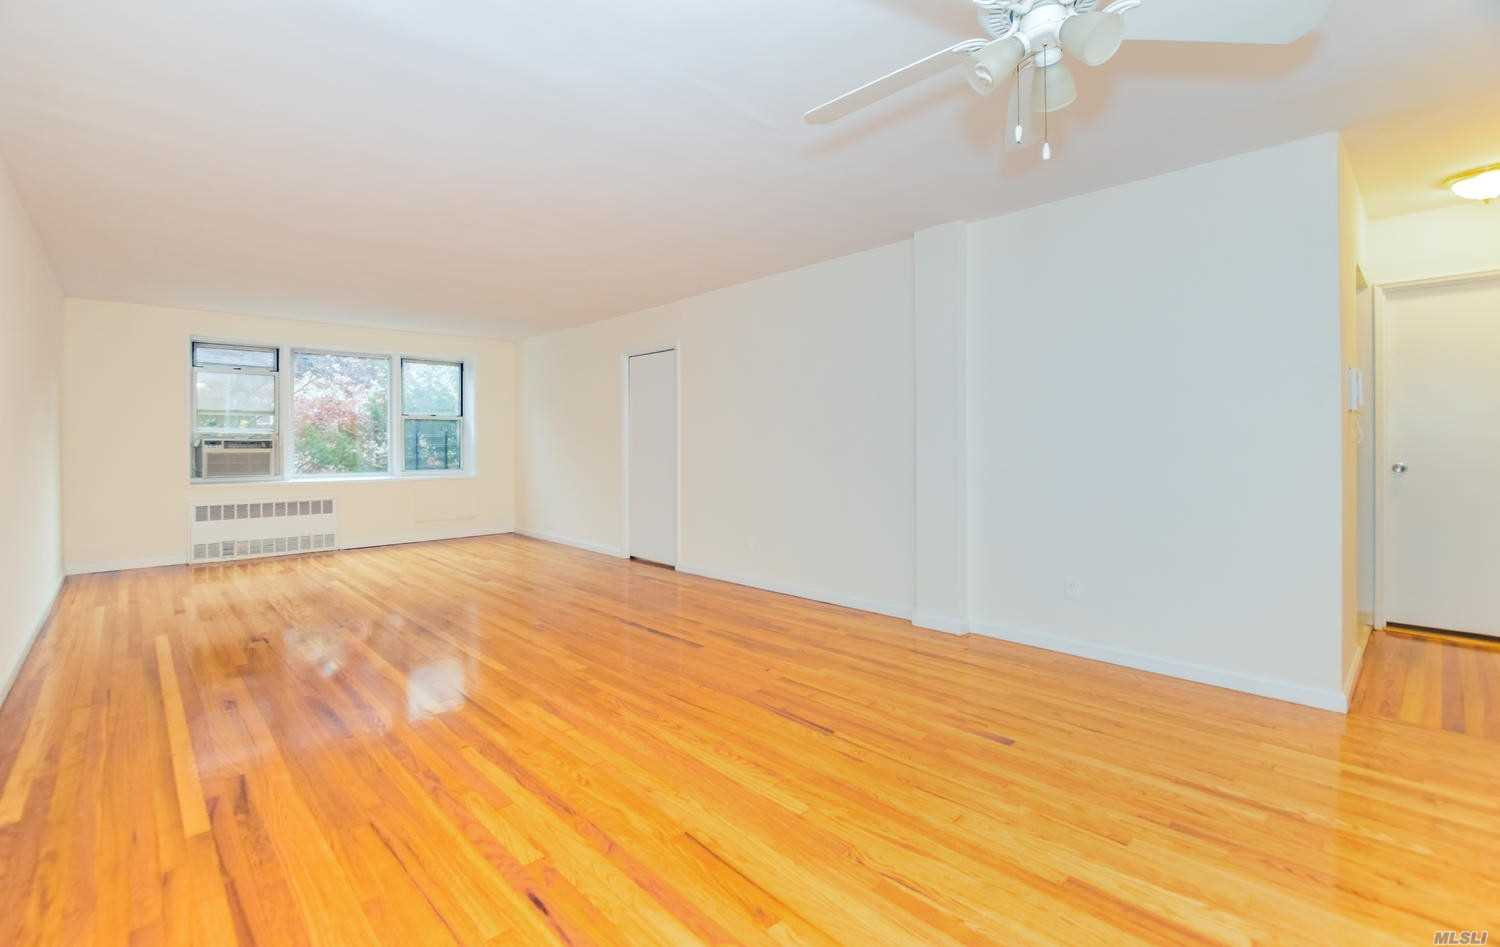 679 W 239th 10463 - One of Bronx Homes for Sale